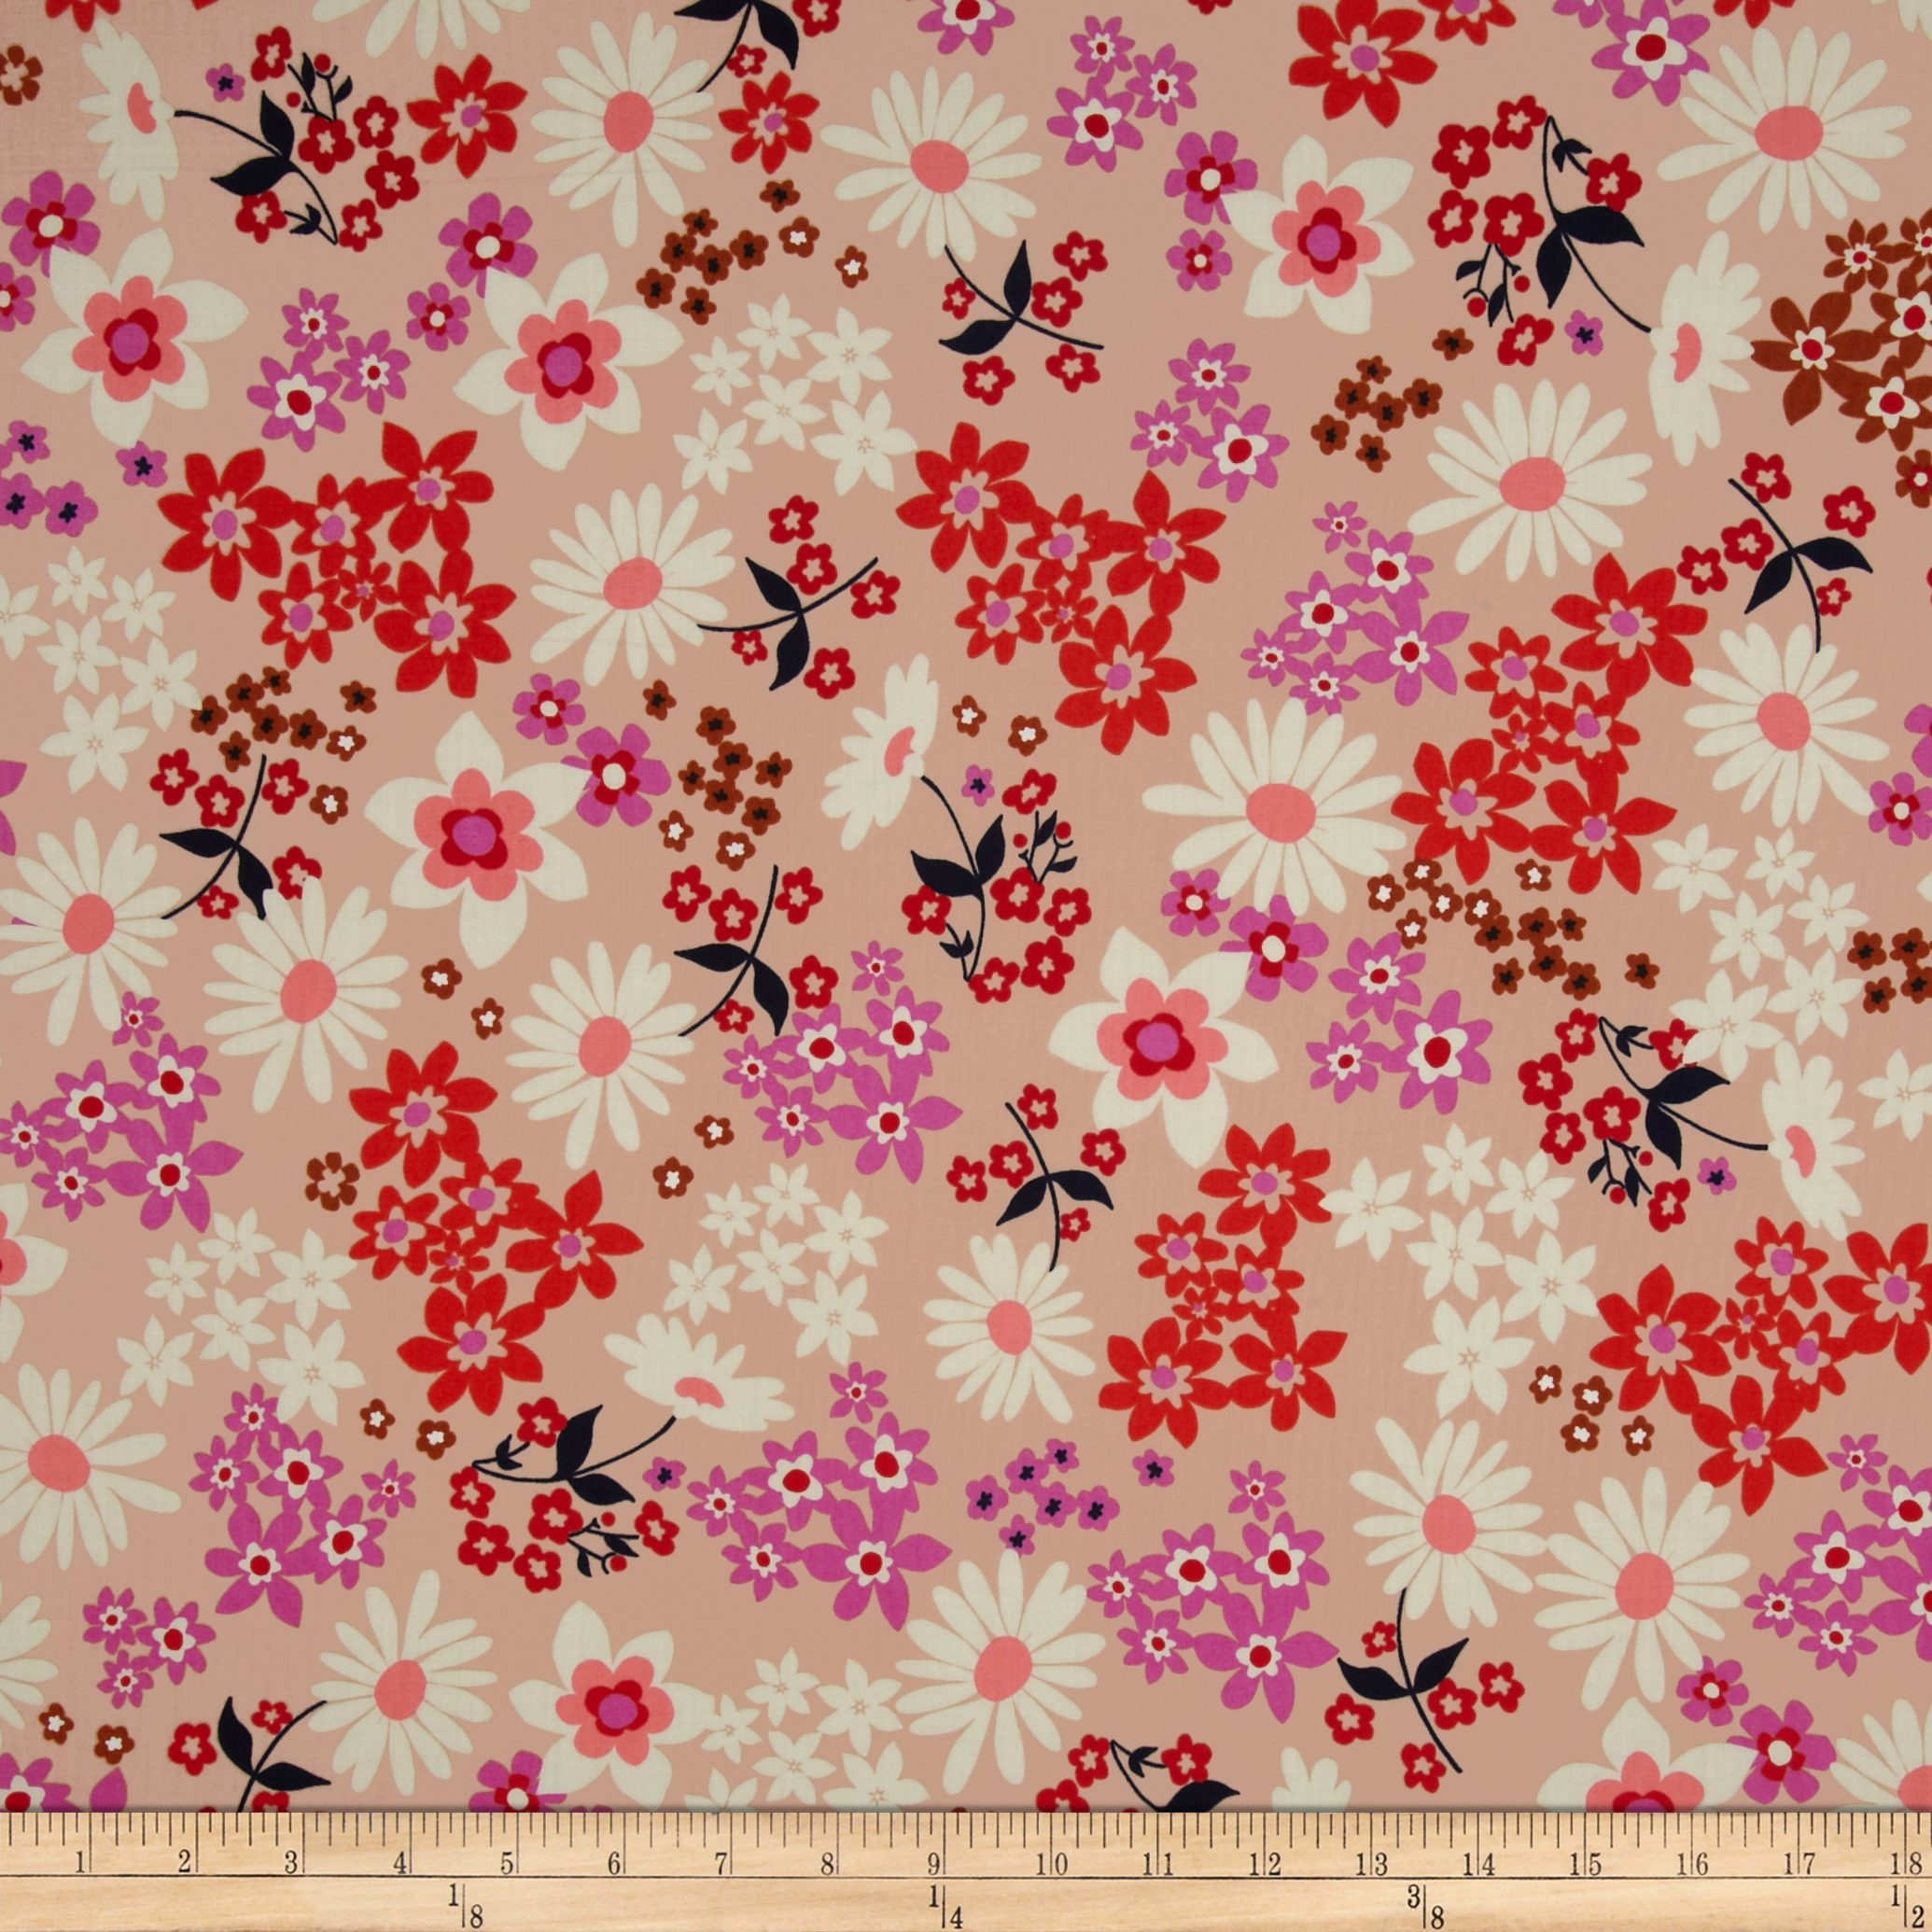 1930s Fashion Colors, Clothing & Fabric Cotton  Steel Playful Lawn Vintage Floral Pink Fabric $14.00 AT vintagedancer.com